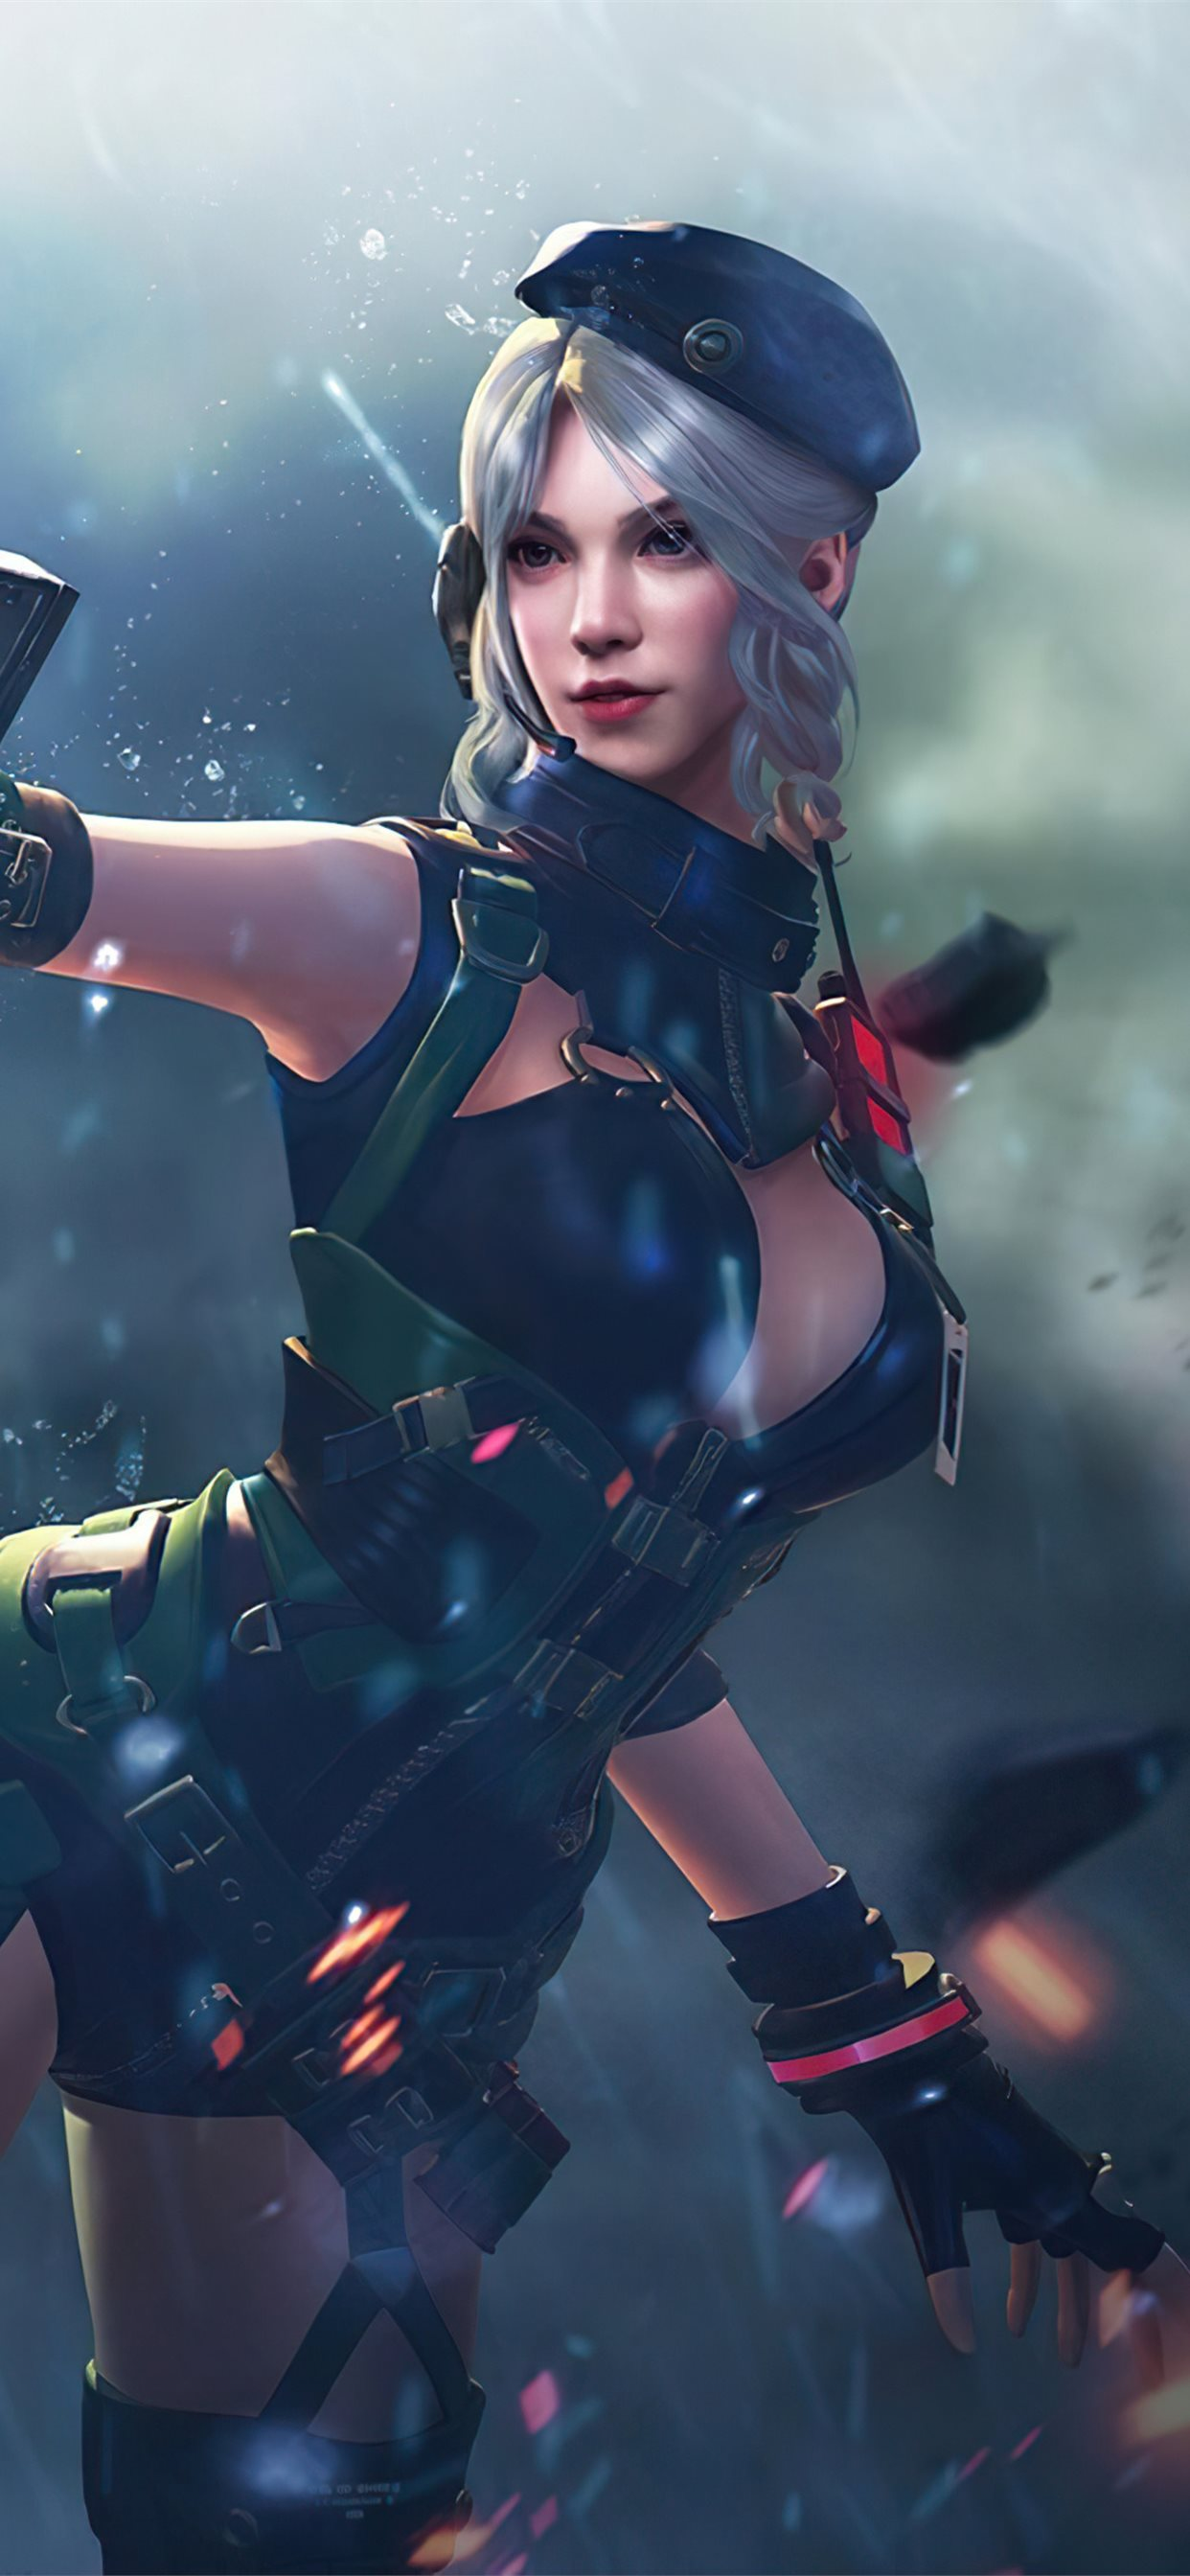 Garena Free Fire 4k 2020 Iphone X Wallpapers Free Download